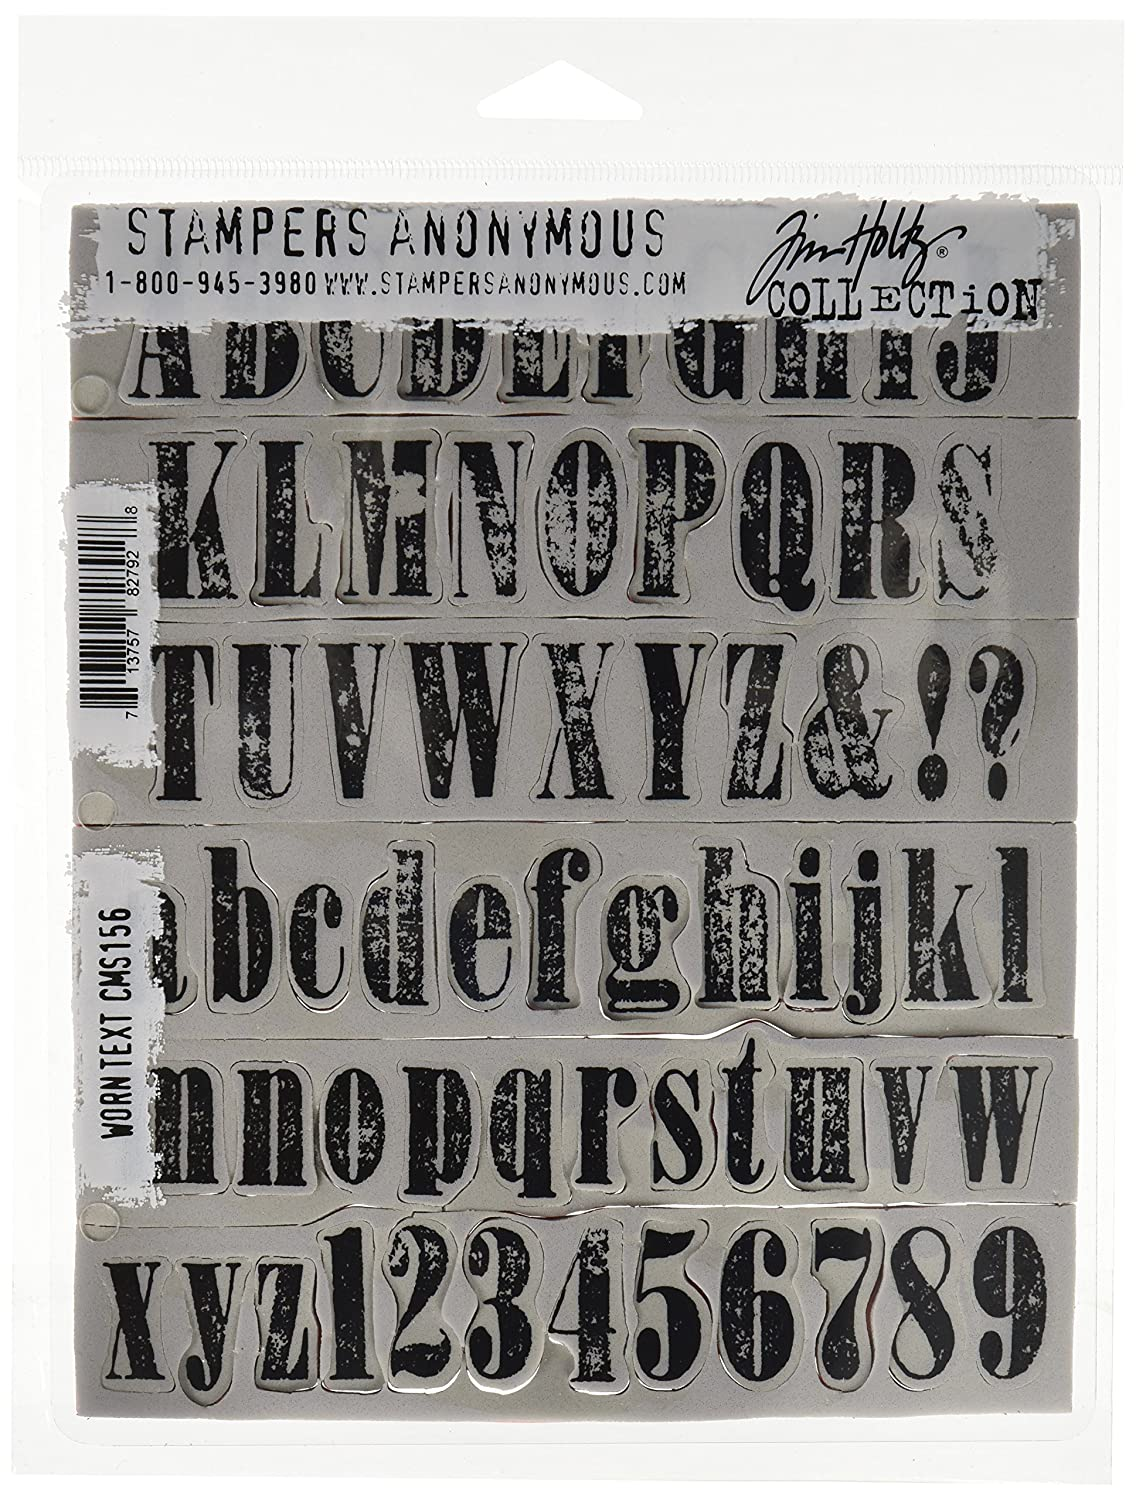 Stampers Anonymous Tim Holtz Cling Rubber Stamp Set Worn Text 7 by 8.5-Inch